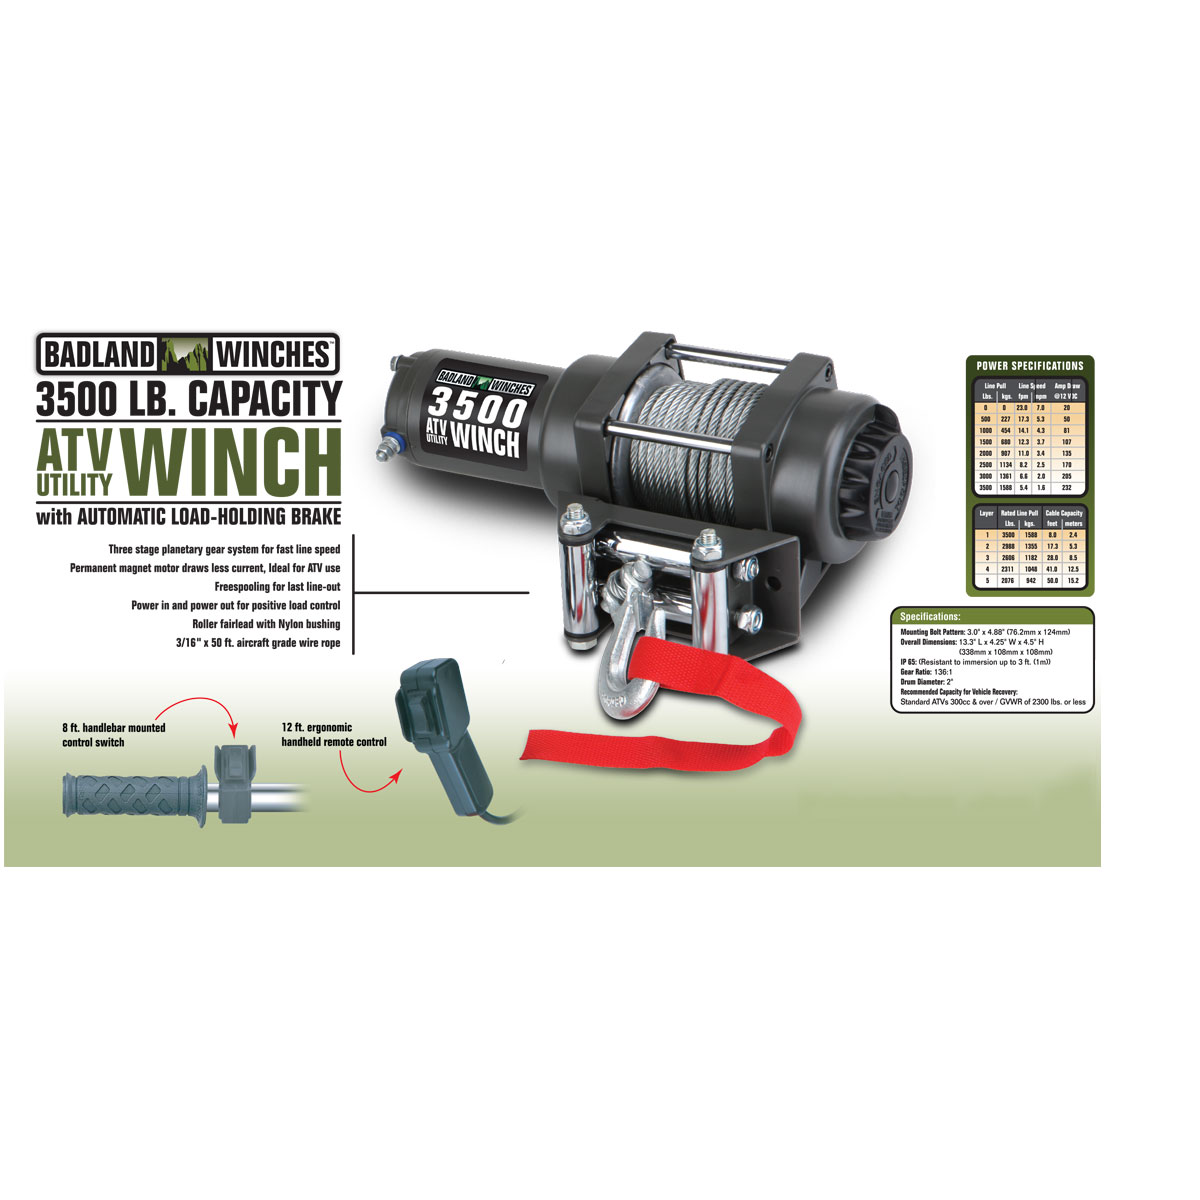 hight resolution of atv utility electric winch with automatic load holding brake